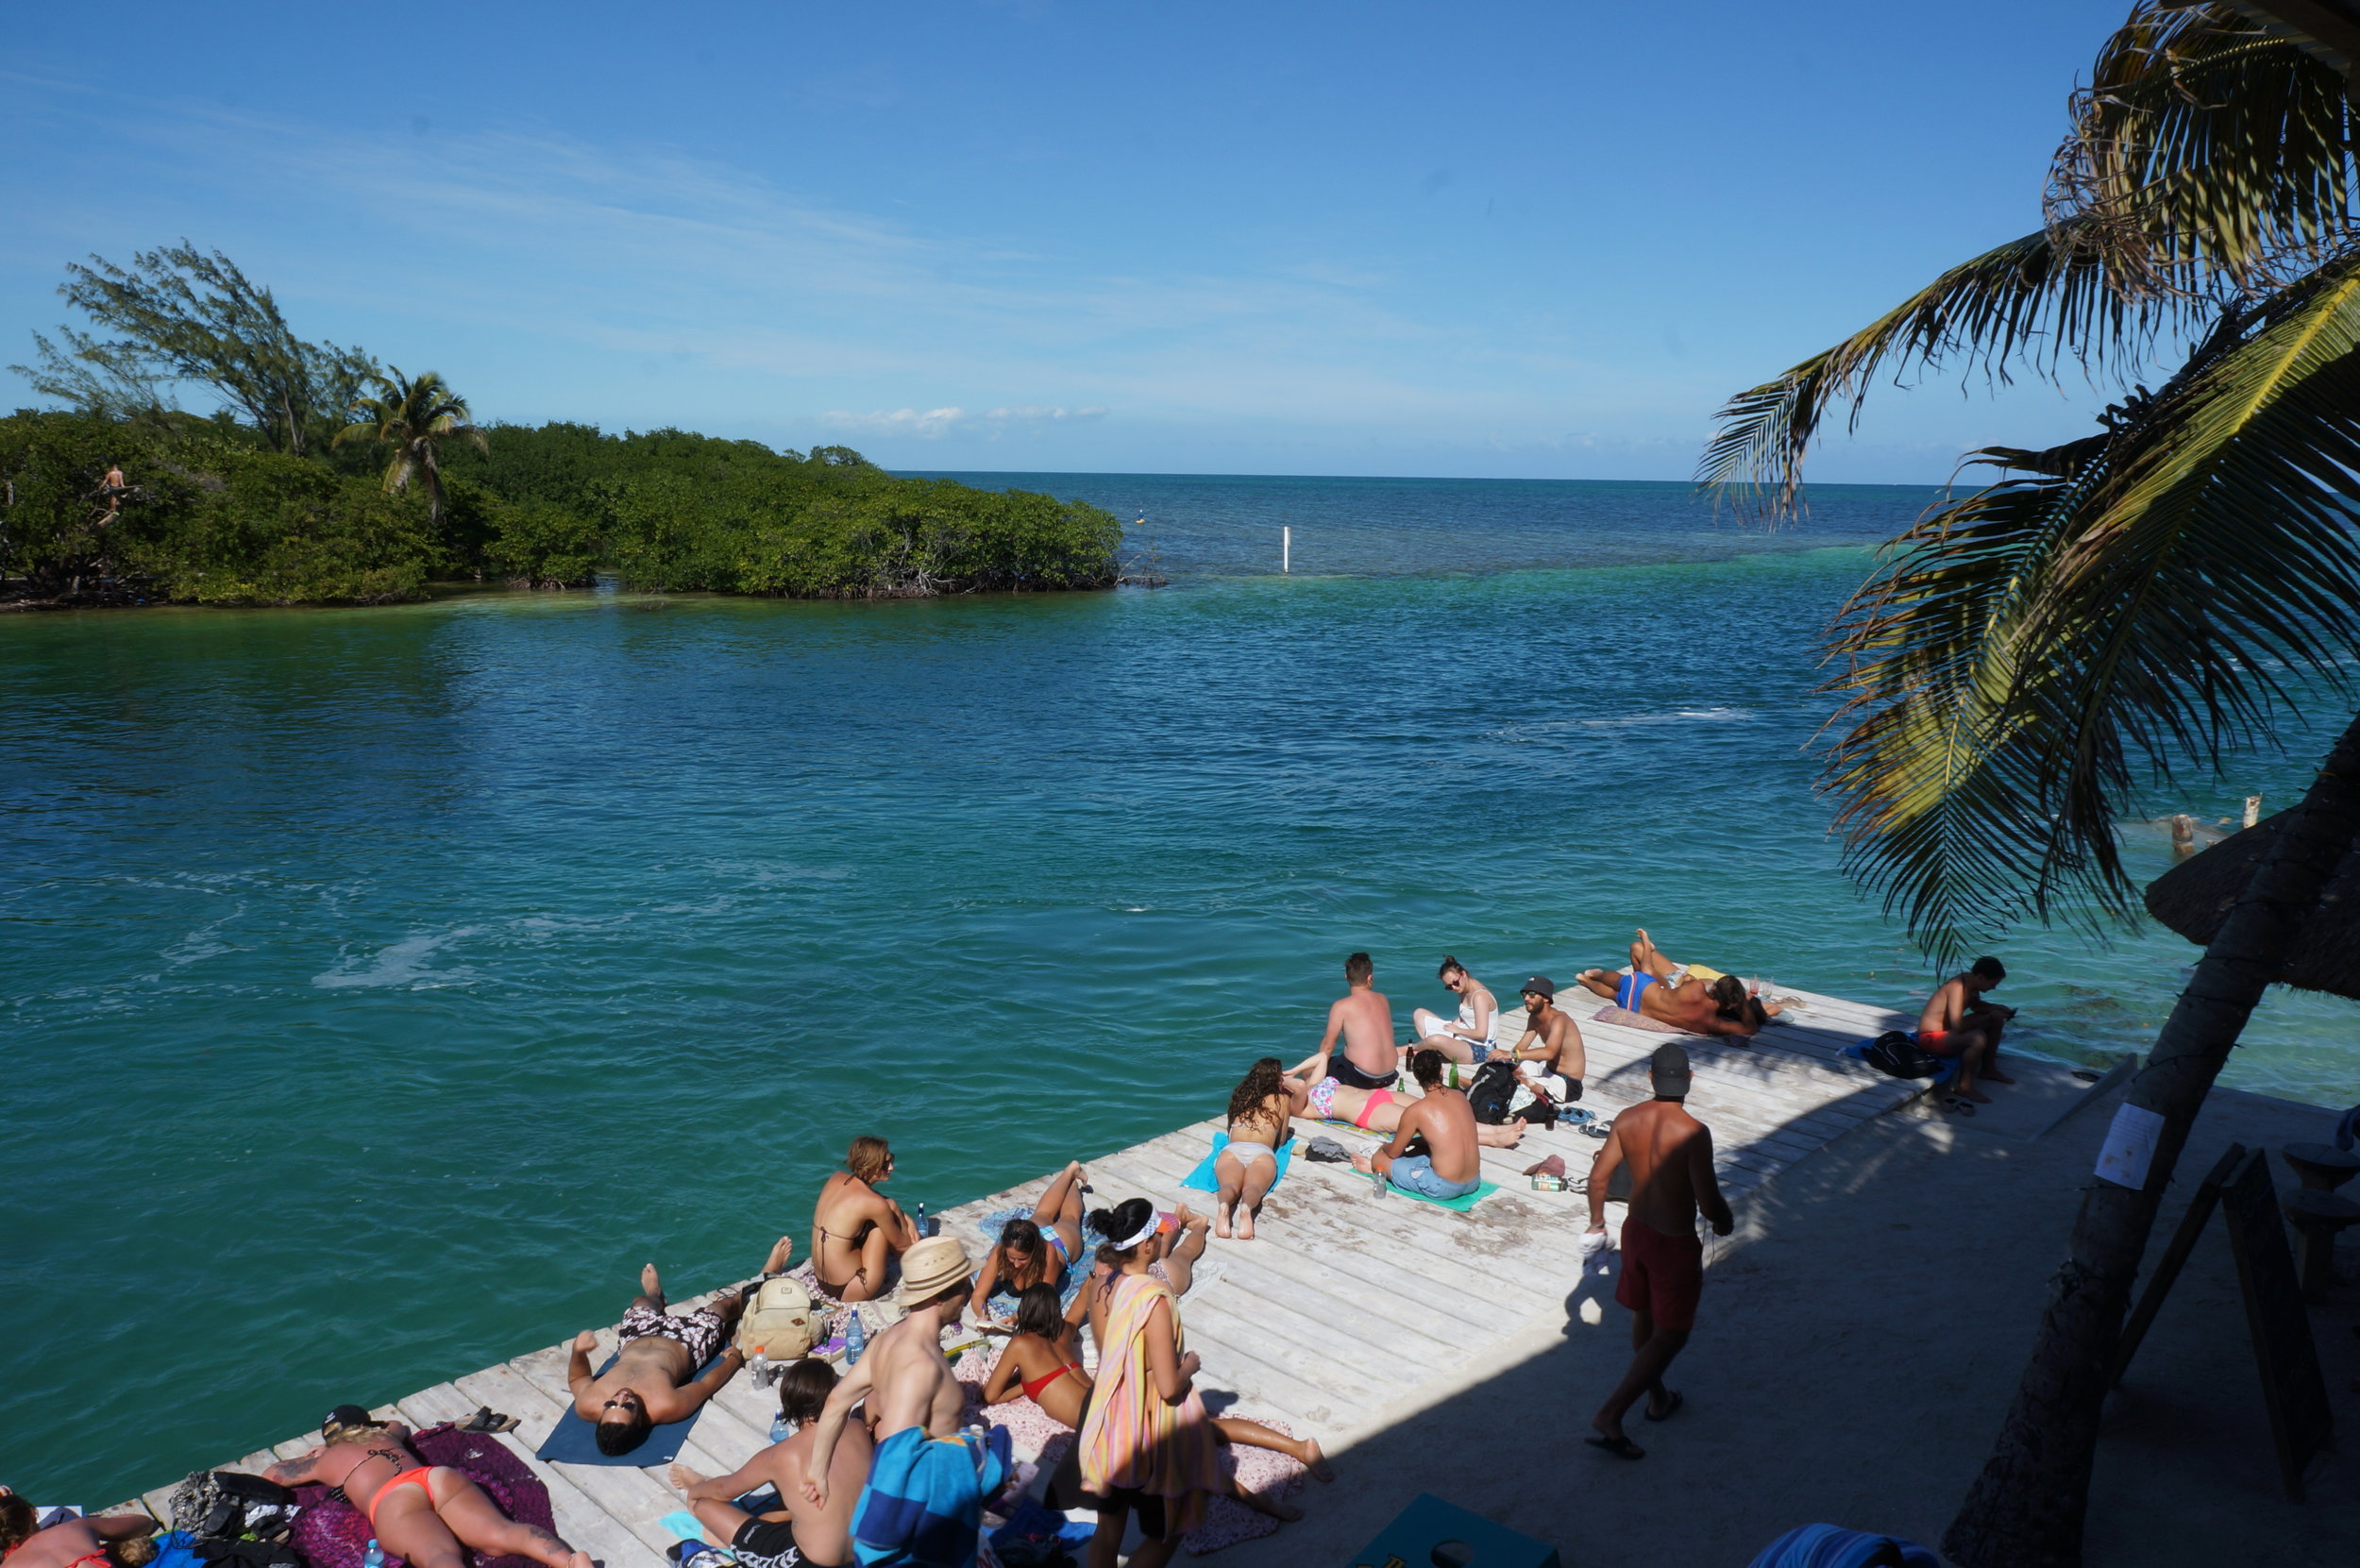 Sunning on the Lazy Lizard deck with views of the Split